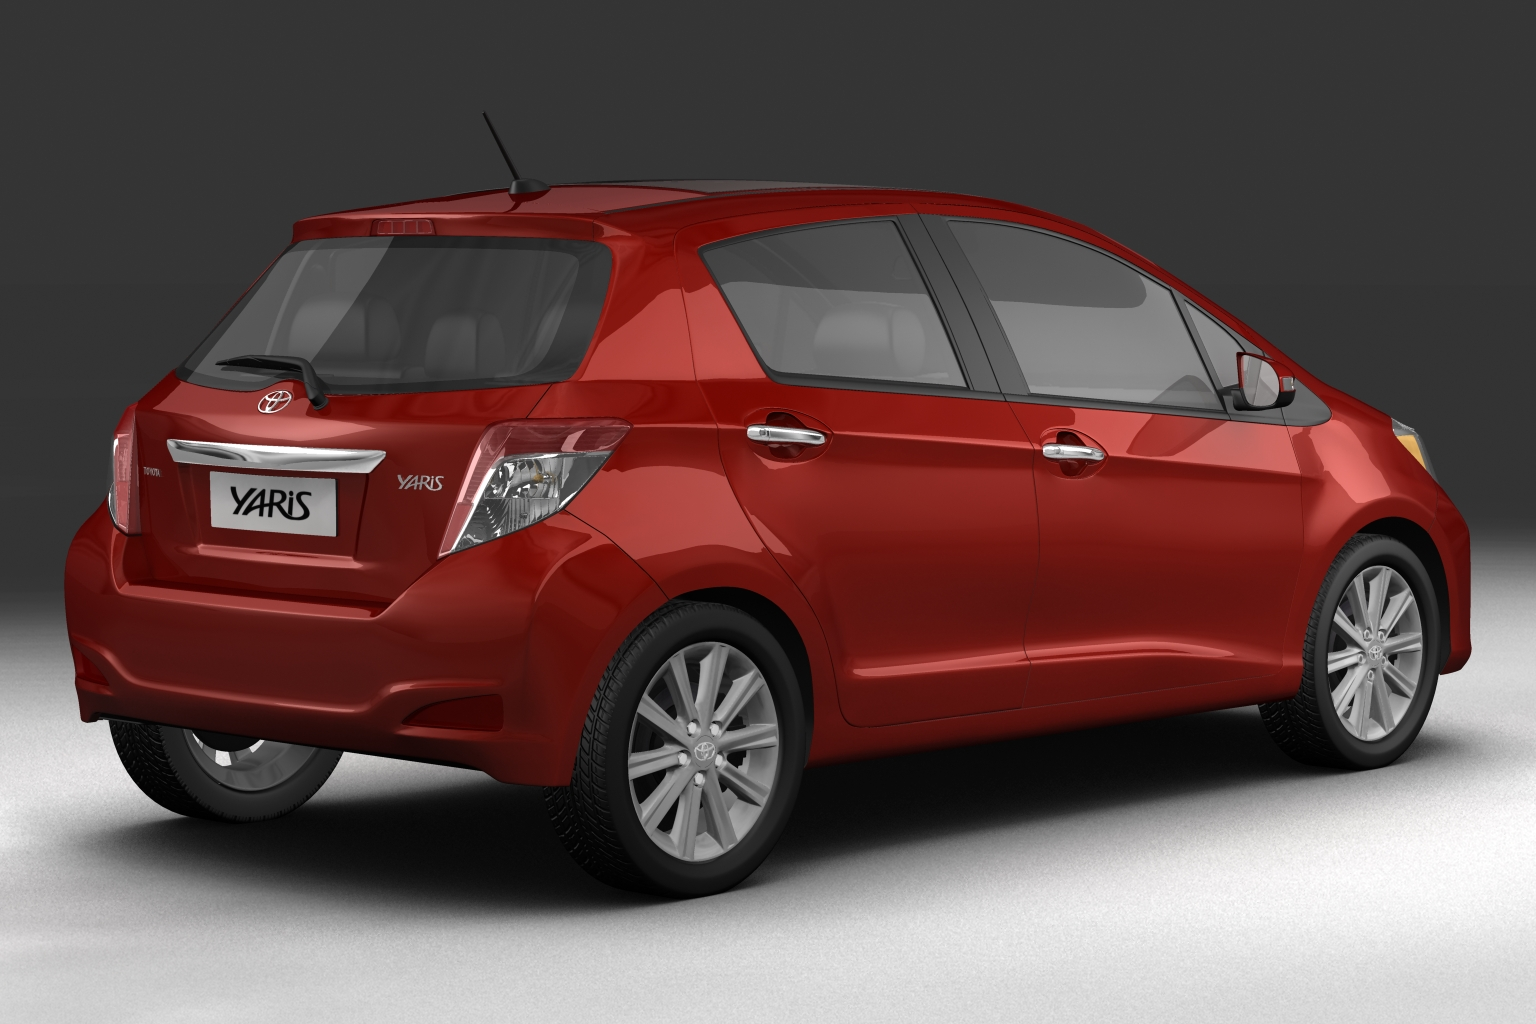 2012 toyota yaris vitz 3d model buy 2012 toyota yaris vitz 3d model flatpyramid. Black Bedroom Furniture Sets. Home Design Ideas